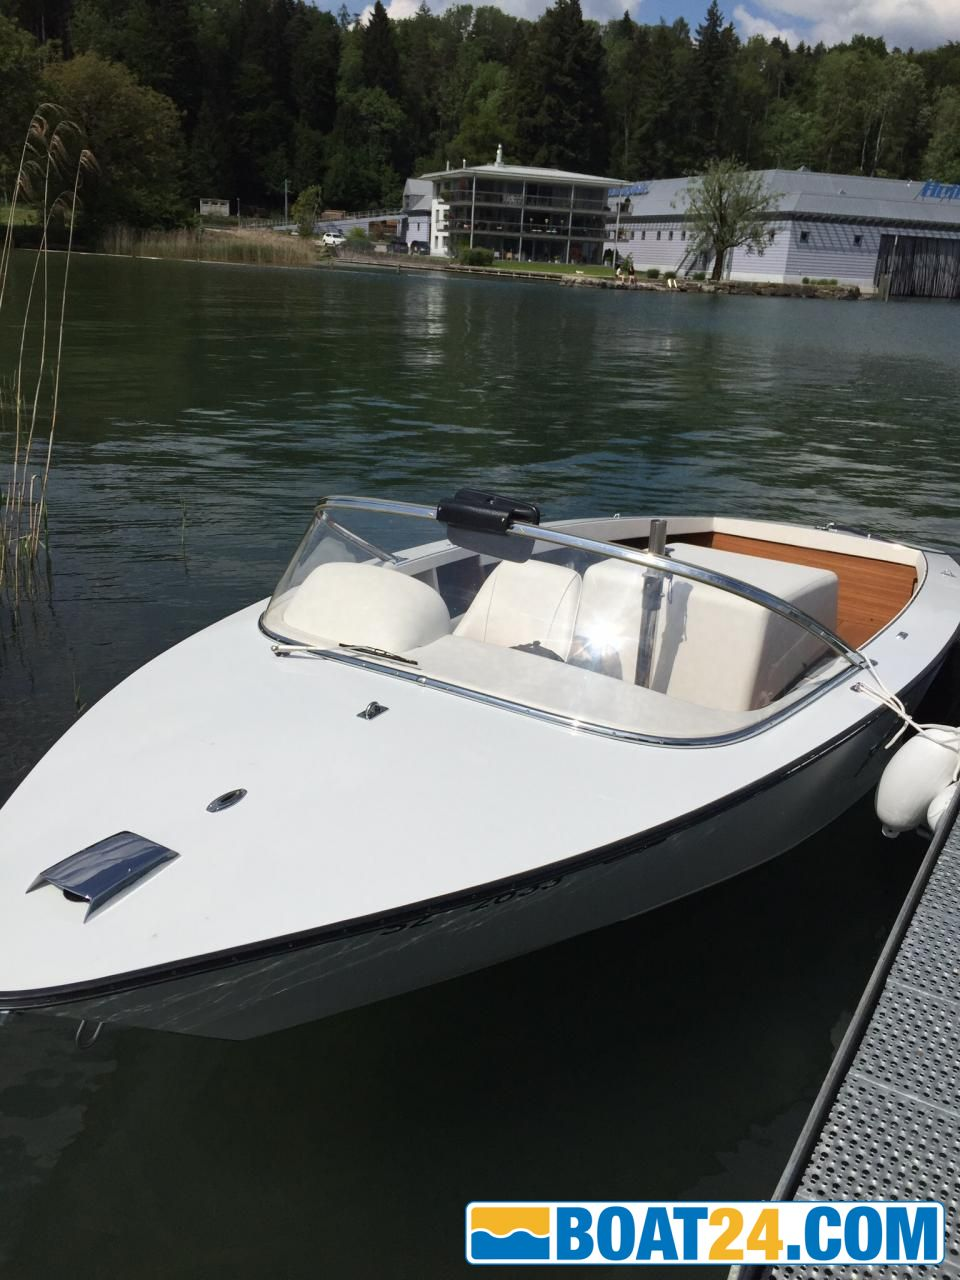 Boesch 560 Super Competition, CHF 29,900 | boat24 com/uk